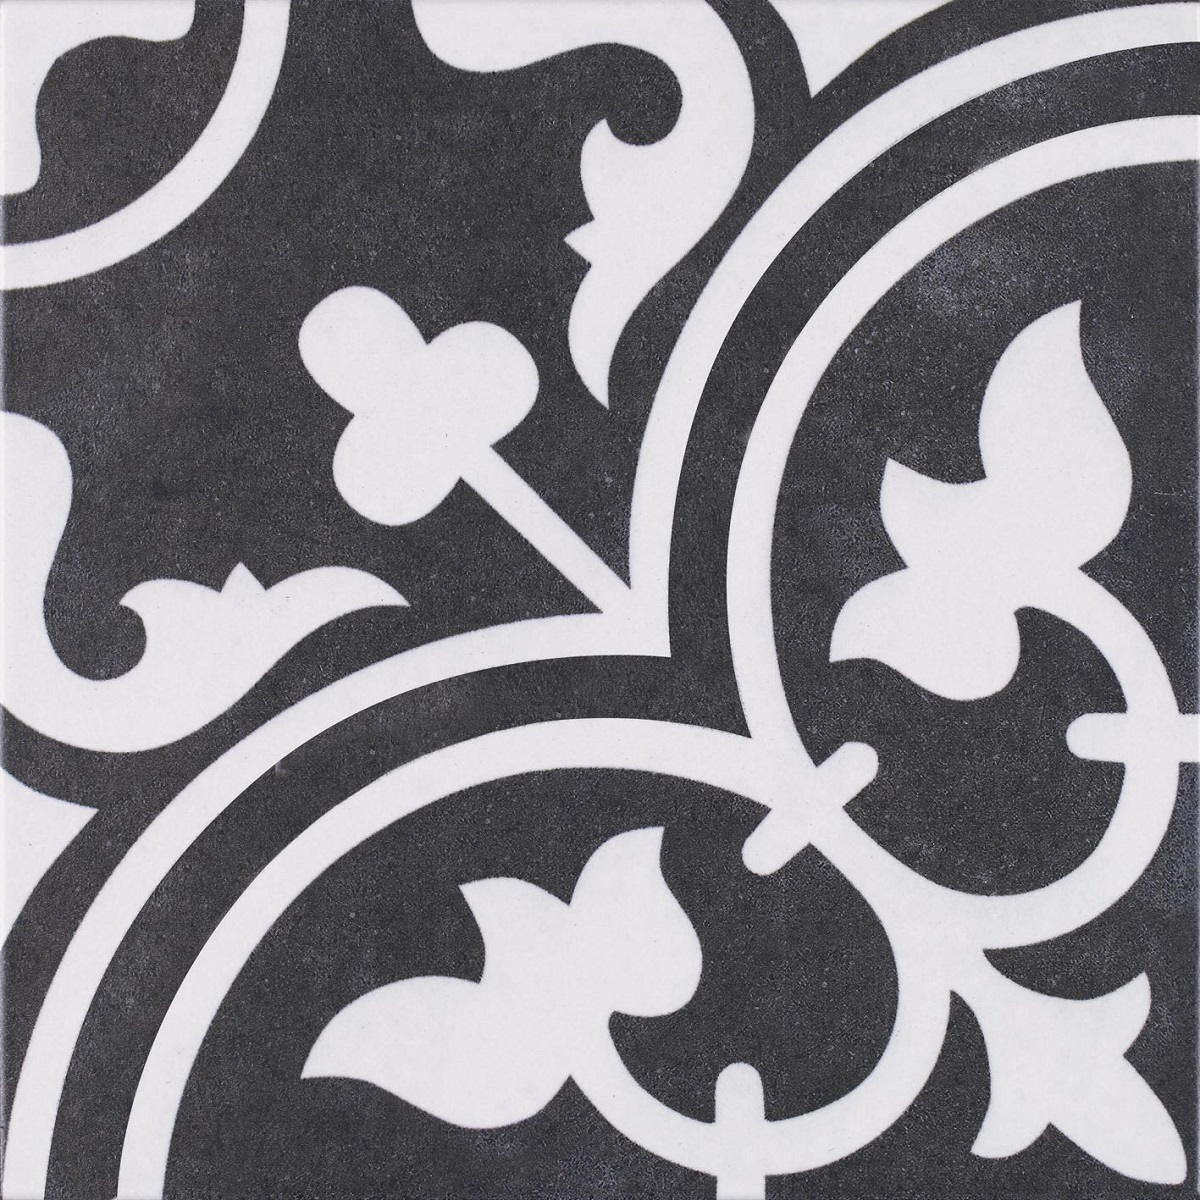 image/catalog/product_series_tiles/1954/Arte_Black_smaller_pixel.jpg